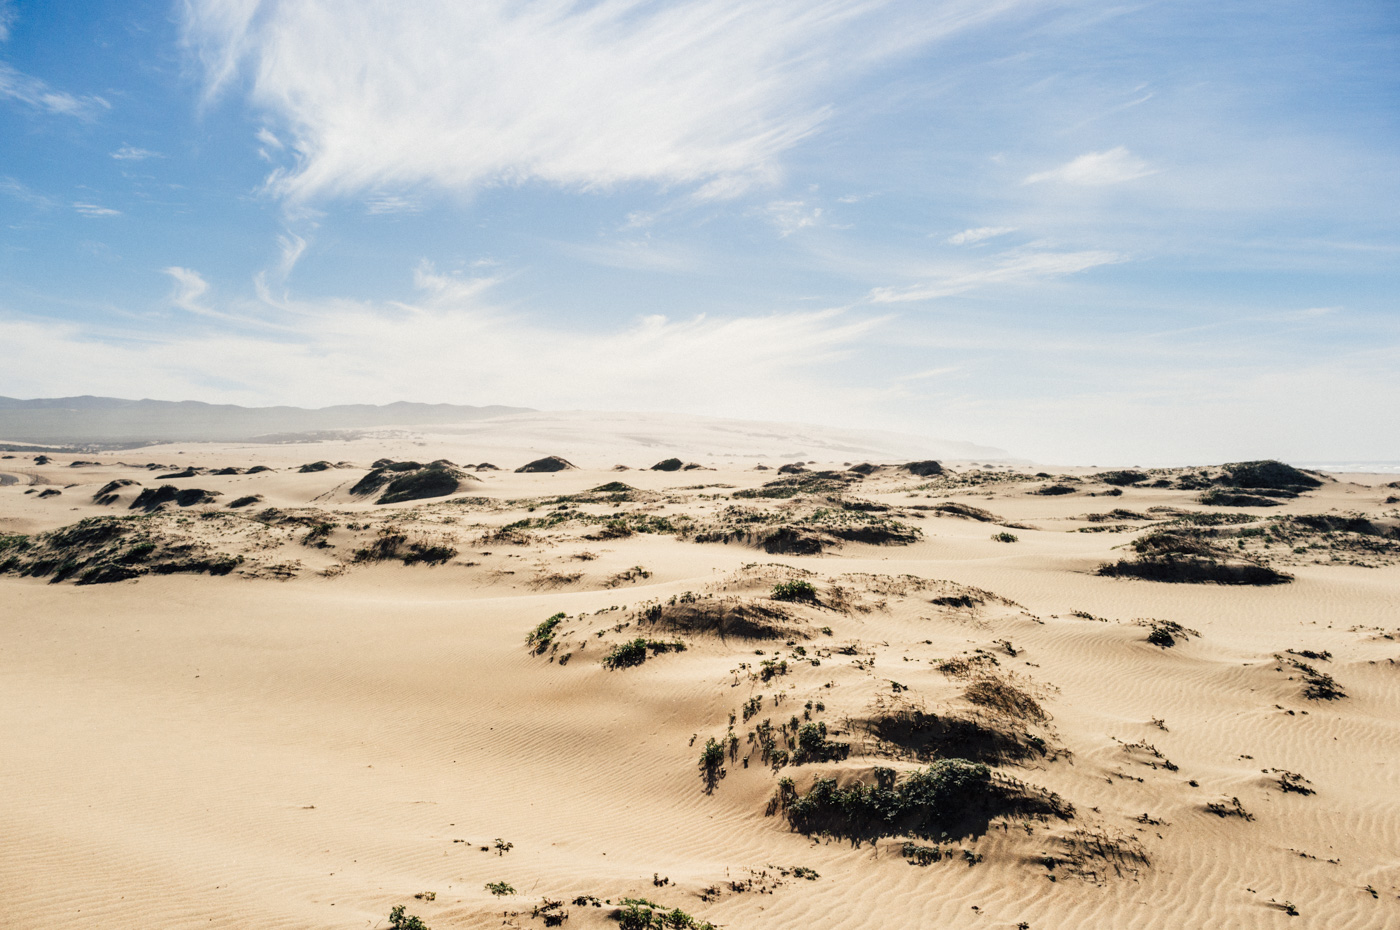 Looking south across the Guadalupe Dunes. ~ Photo taken on a Fuji x100